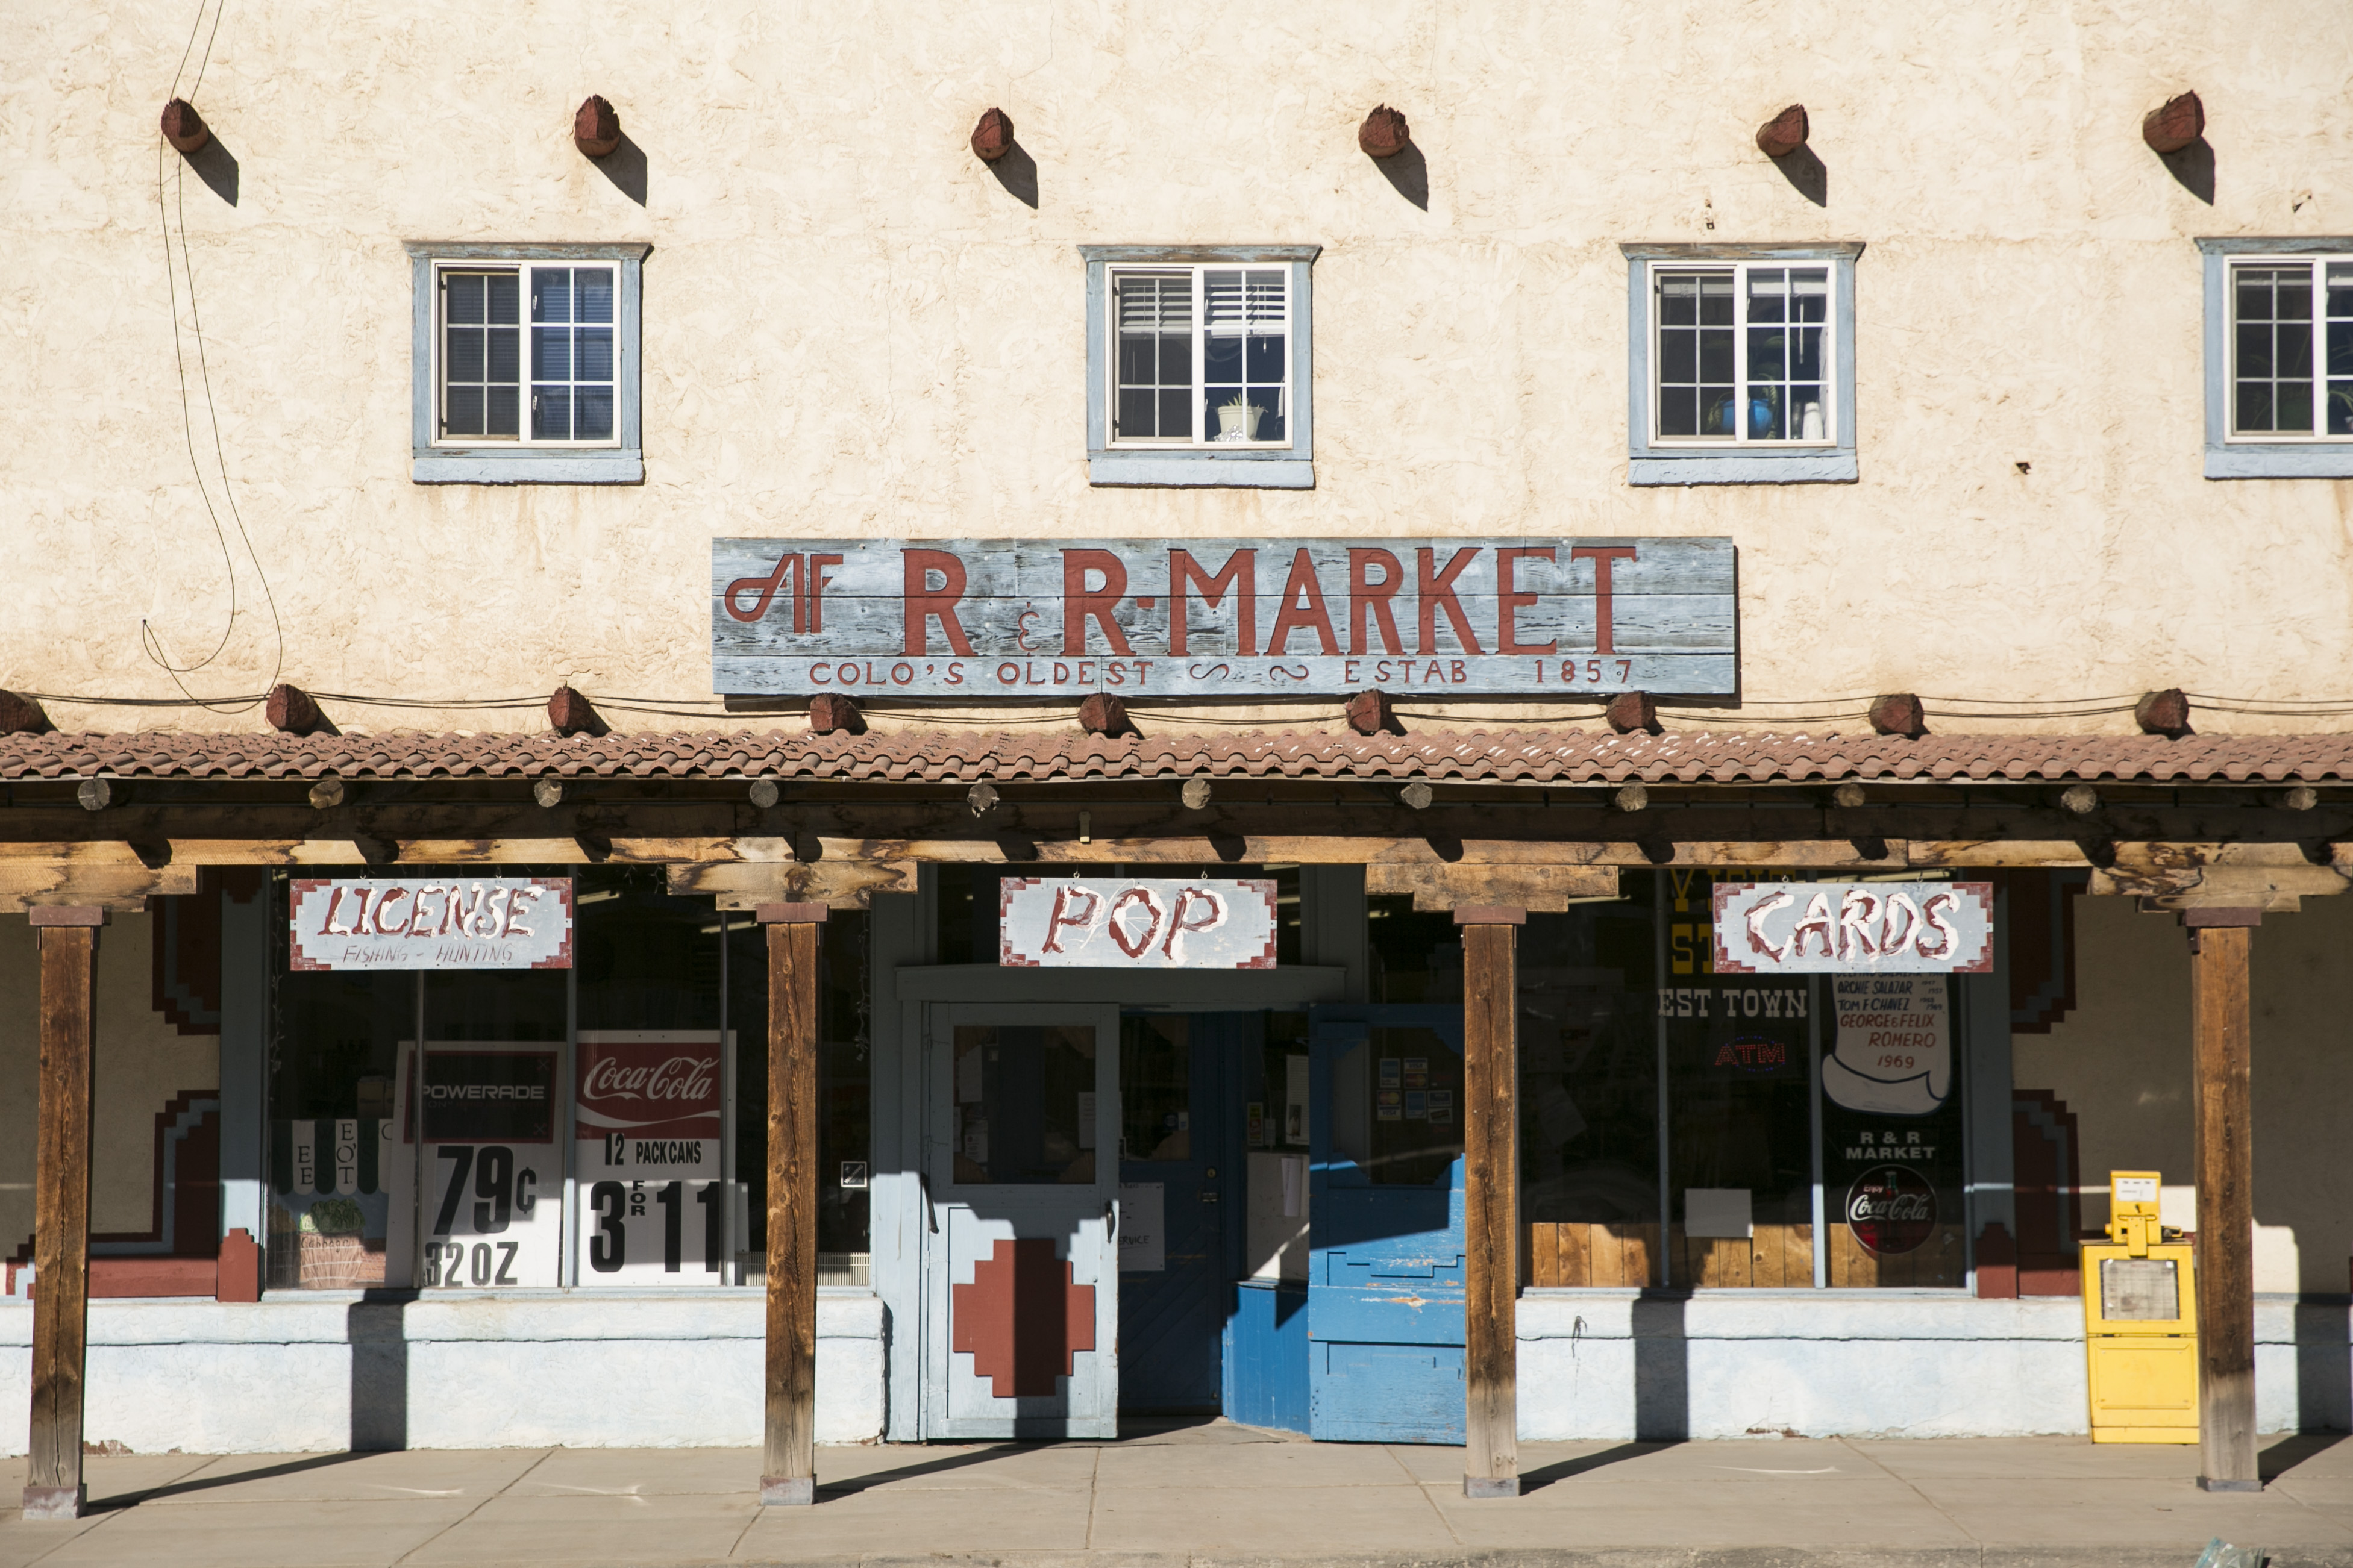 <p>The R&R Market on Main Street in San Luis, Colorado, has been open since 1857. The current building, seen here, has stood since the late 1940s.</p>